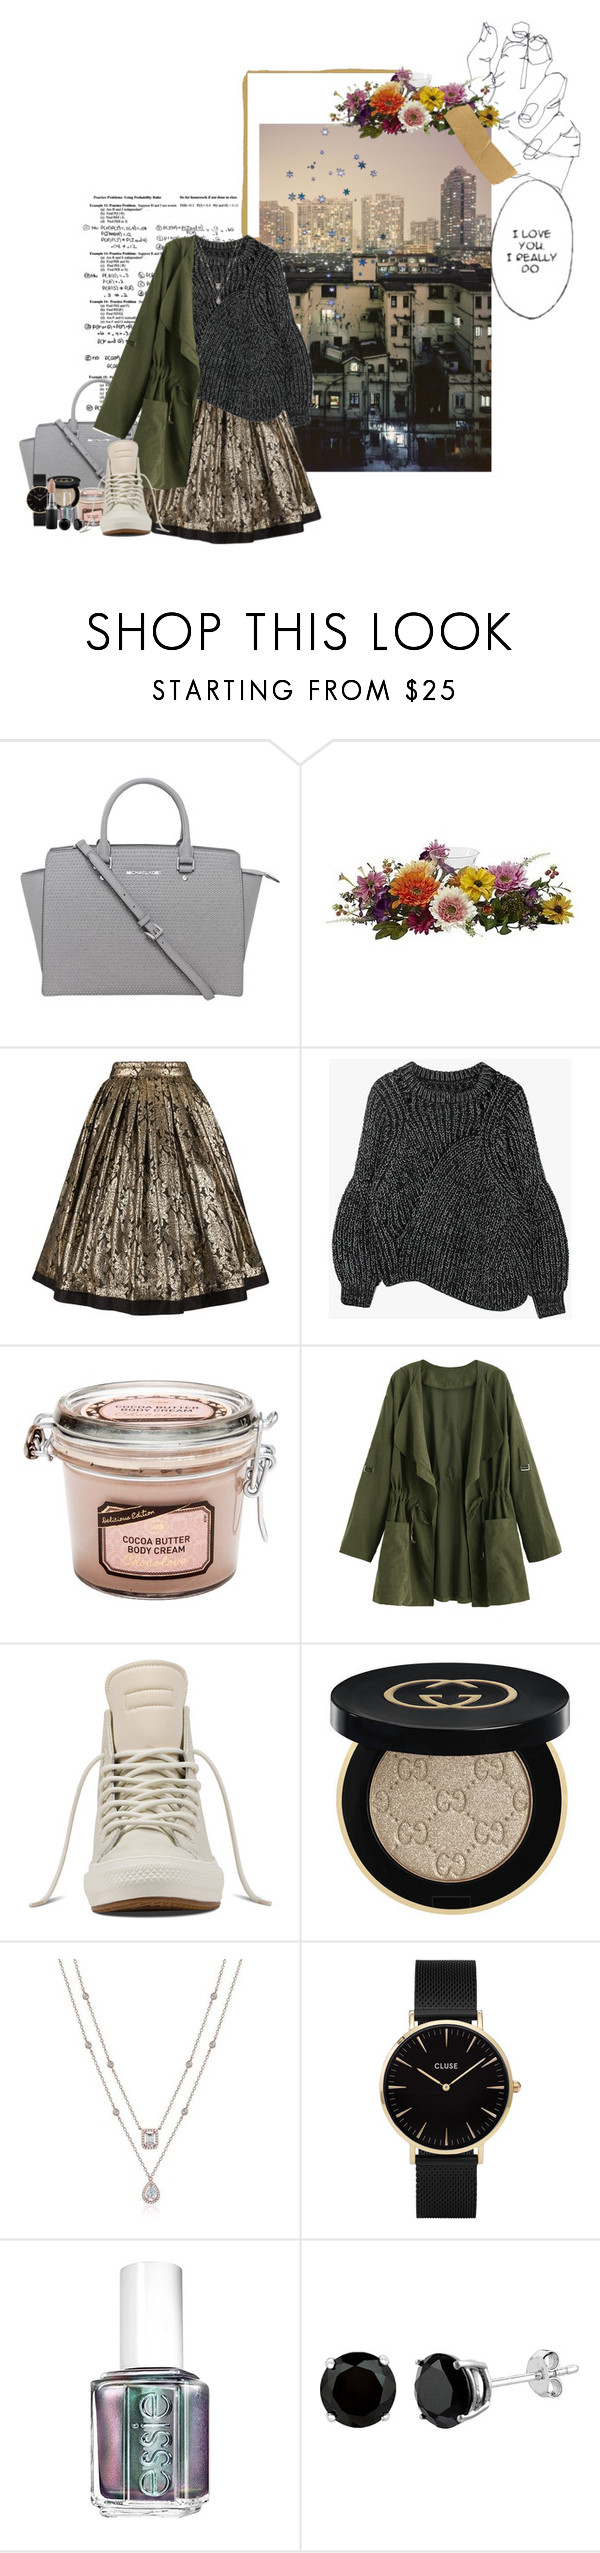 """""""I Got Me"""" by lady-wednesday ❤ liked on Polyvore featuring Michael Kors, Nearly Natural, Versace, Converse, Gucci, CLUSE, Essie and MAC Cosmetics"""